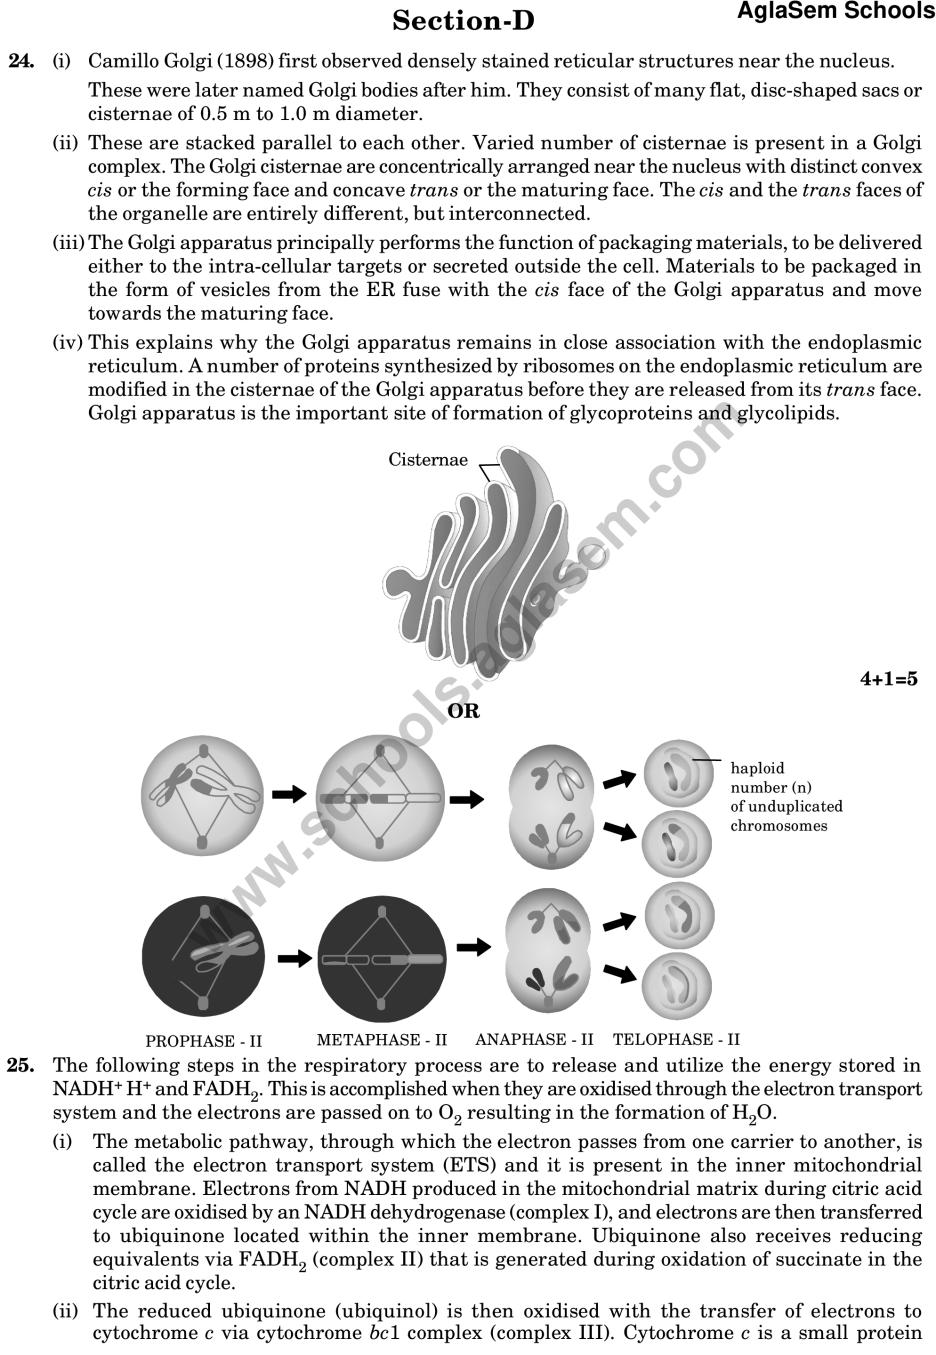 CBSE Sample Paper for Class 11 Biology (Solved) - Set A